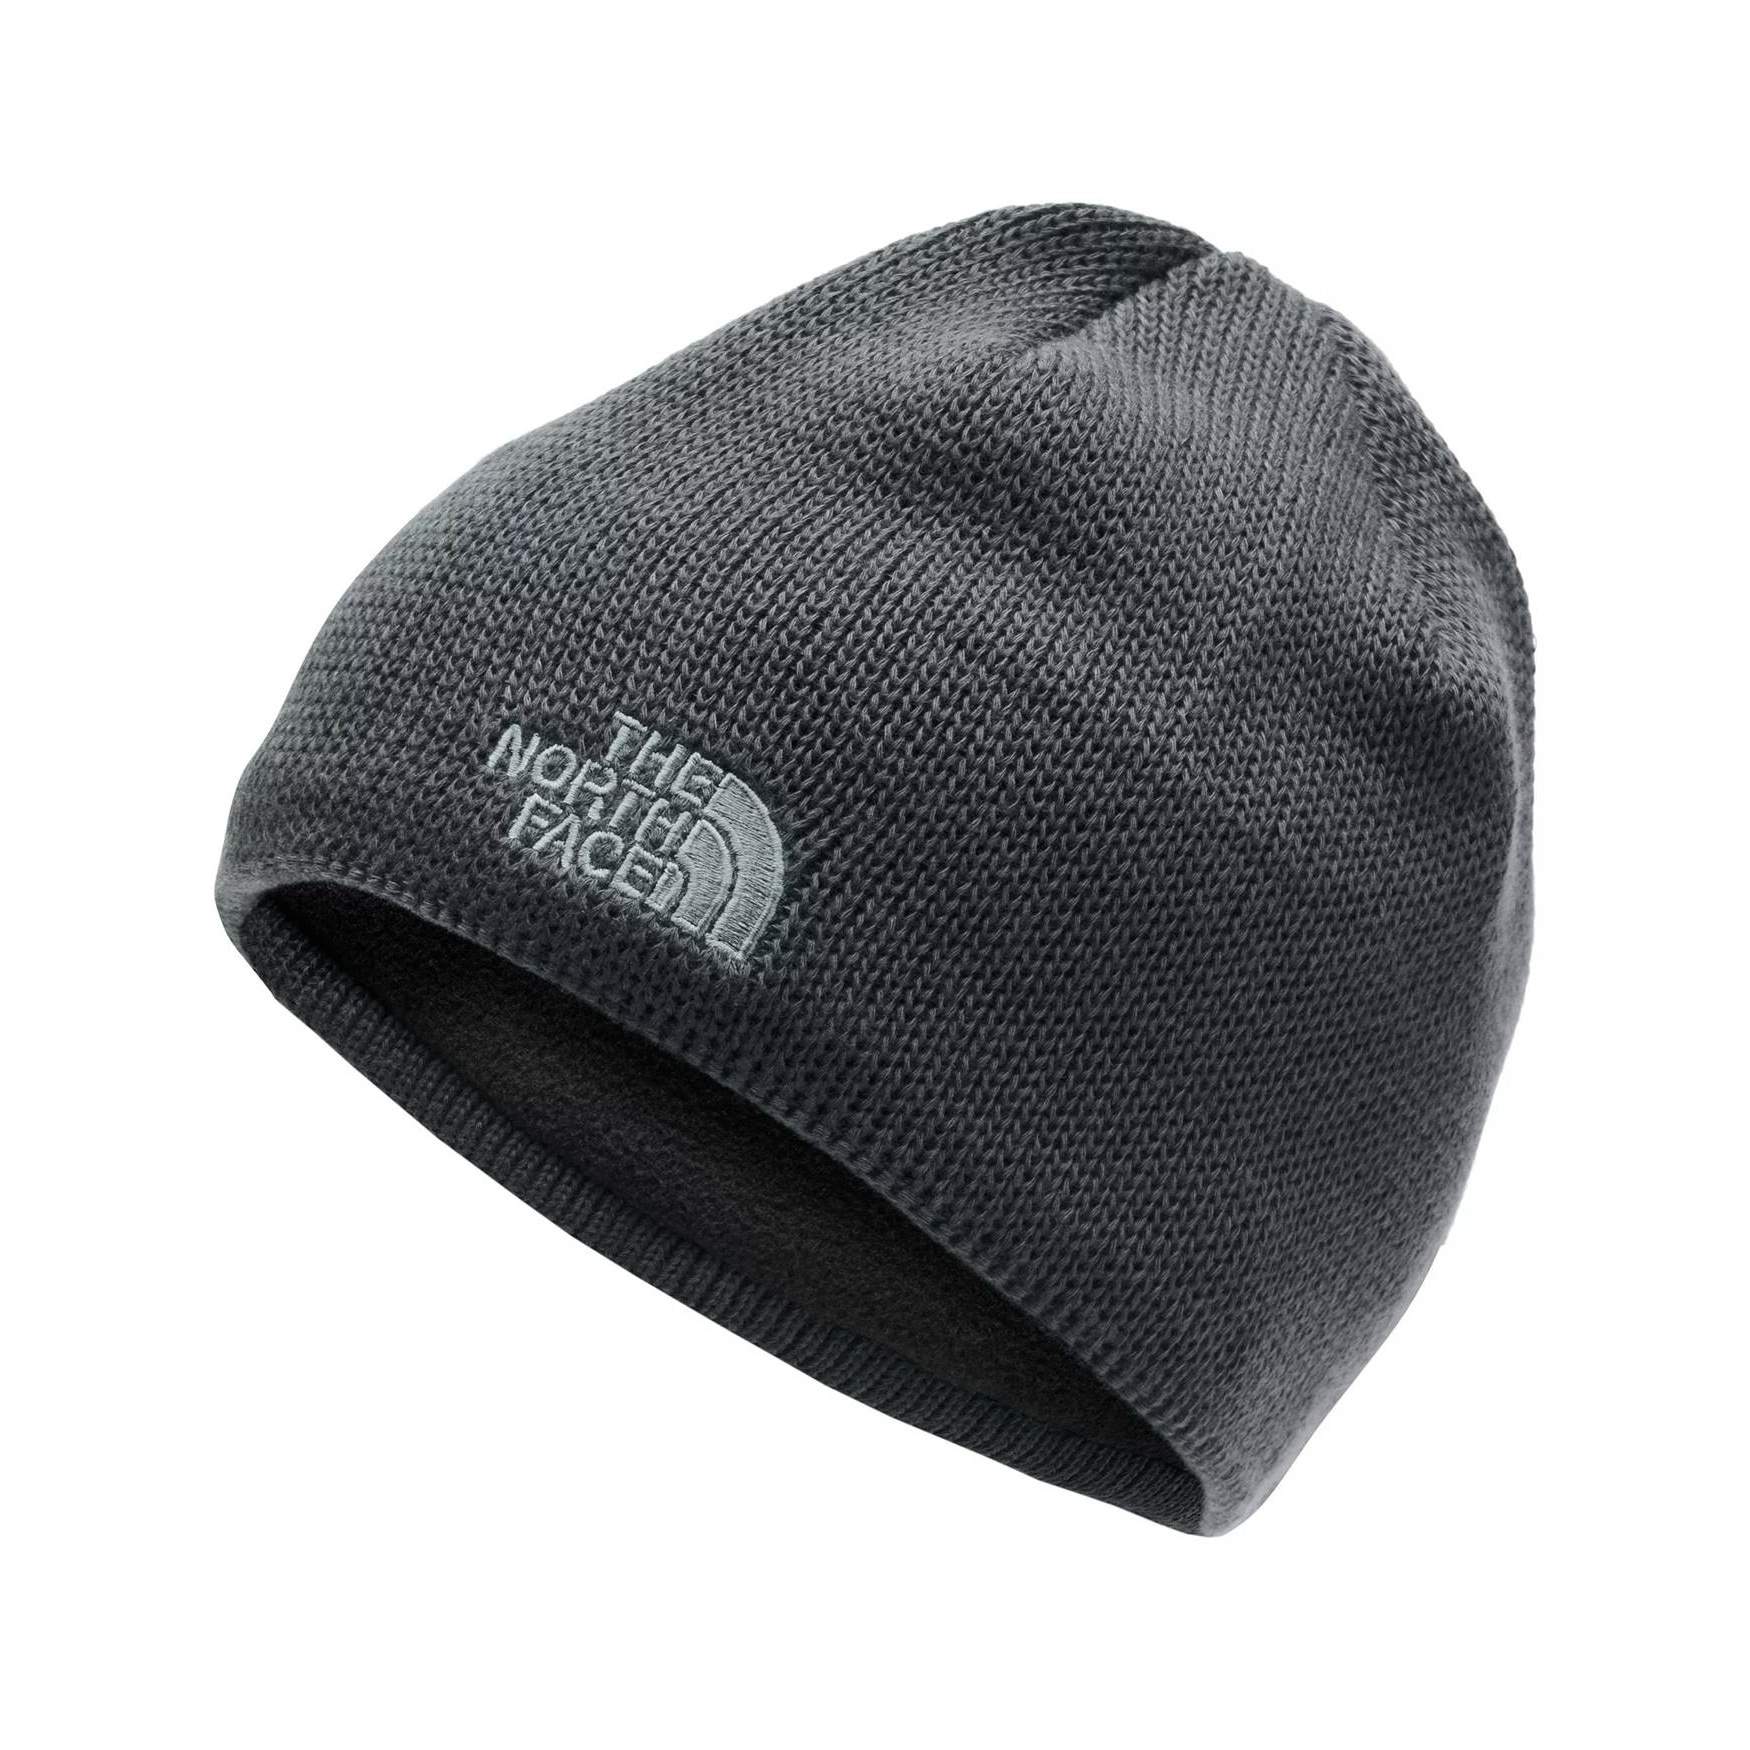 Bones Recycled Beanie - Youths'